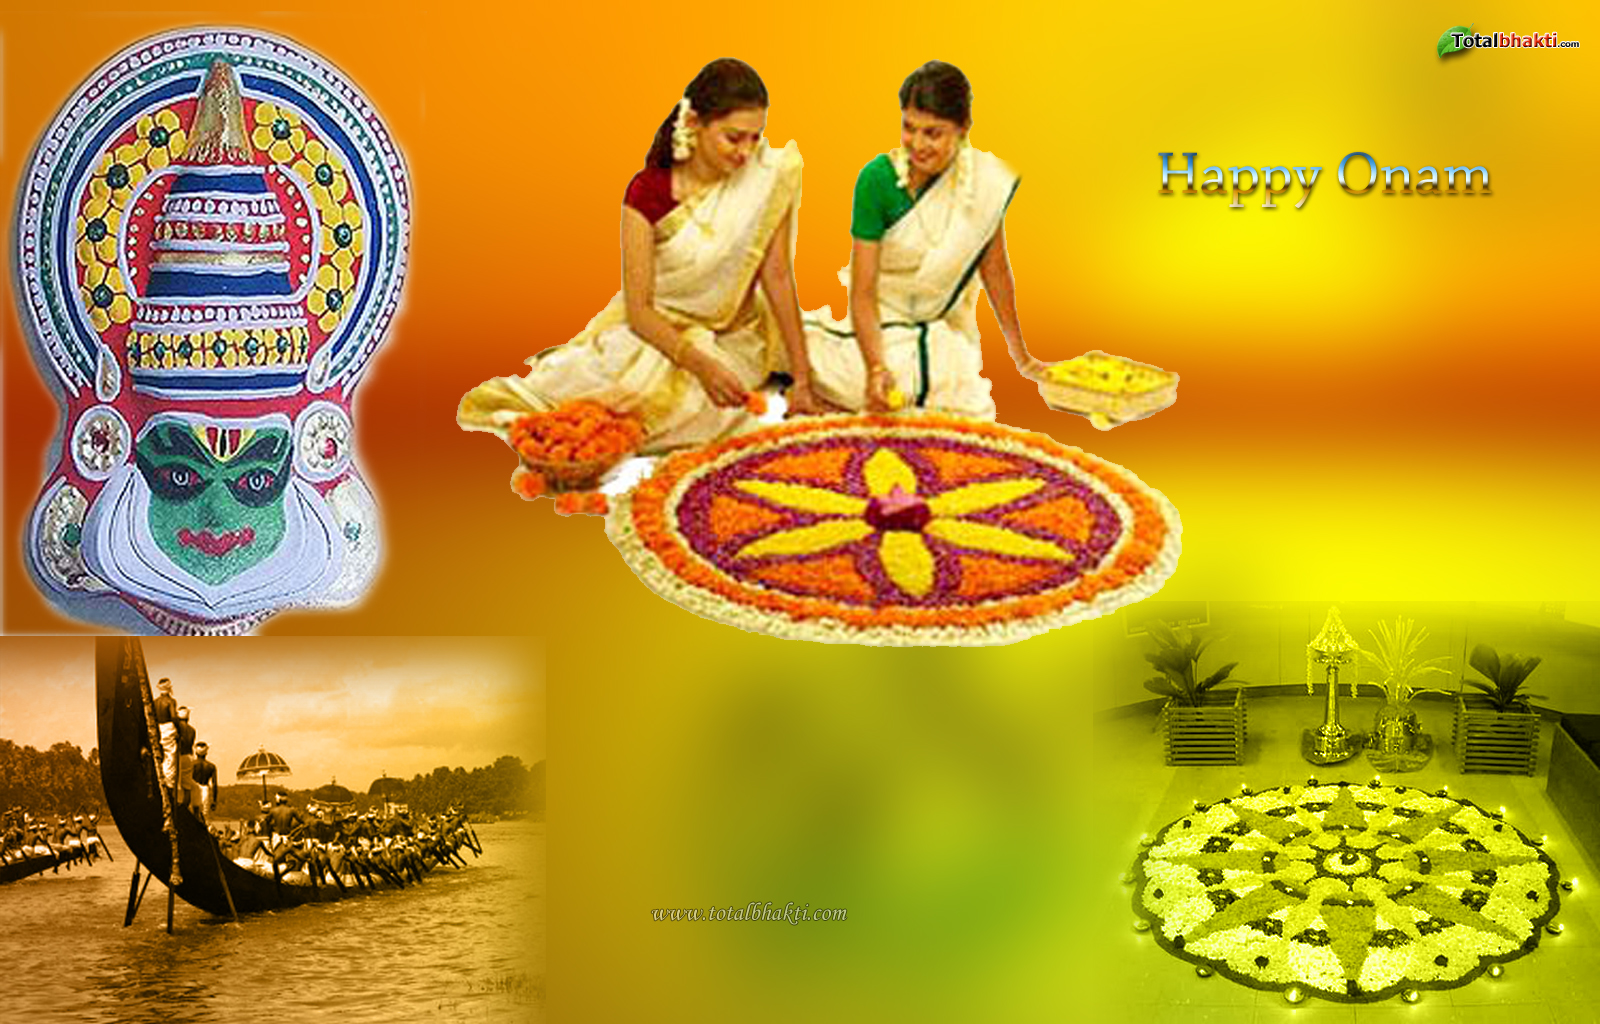 Download Onam Hd Wallpapers Free Download Gallery: Free Picture Photography,Download Portrait Gallery: Onam